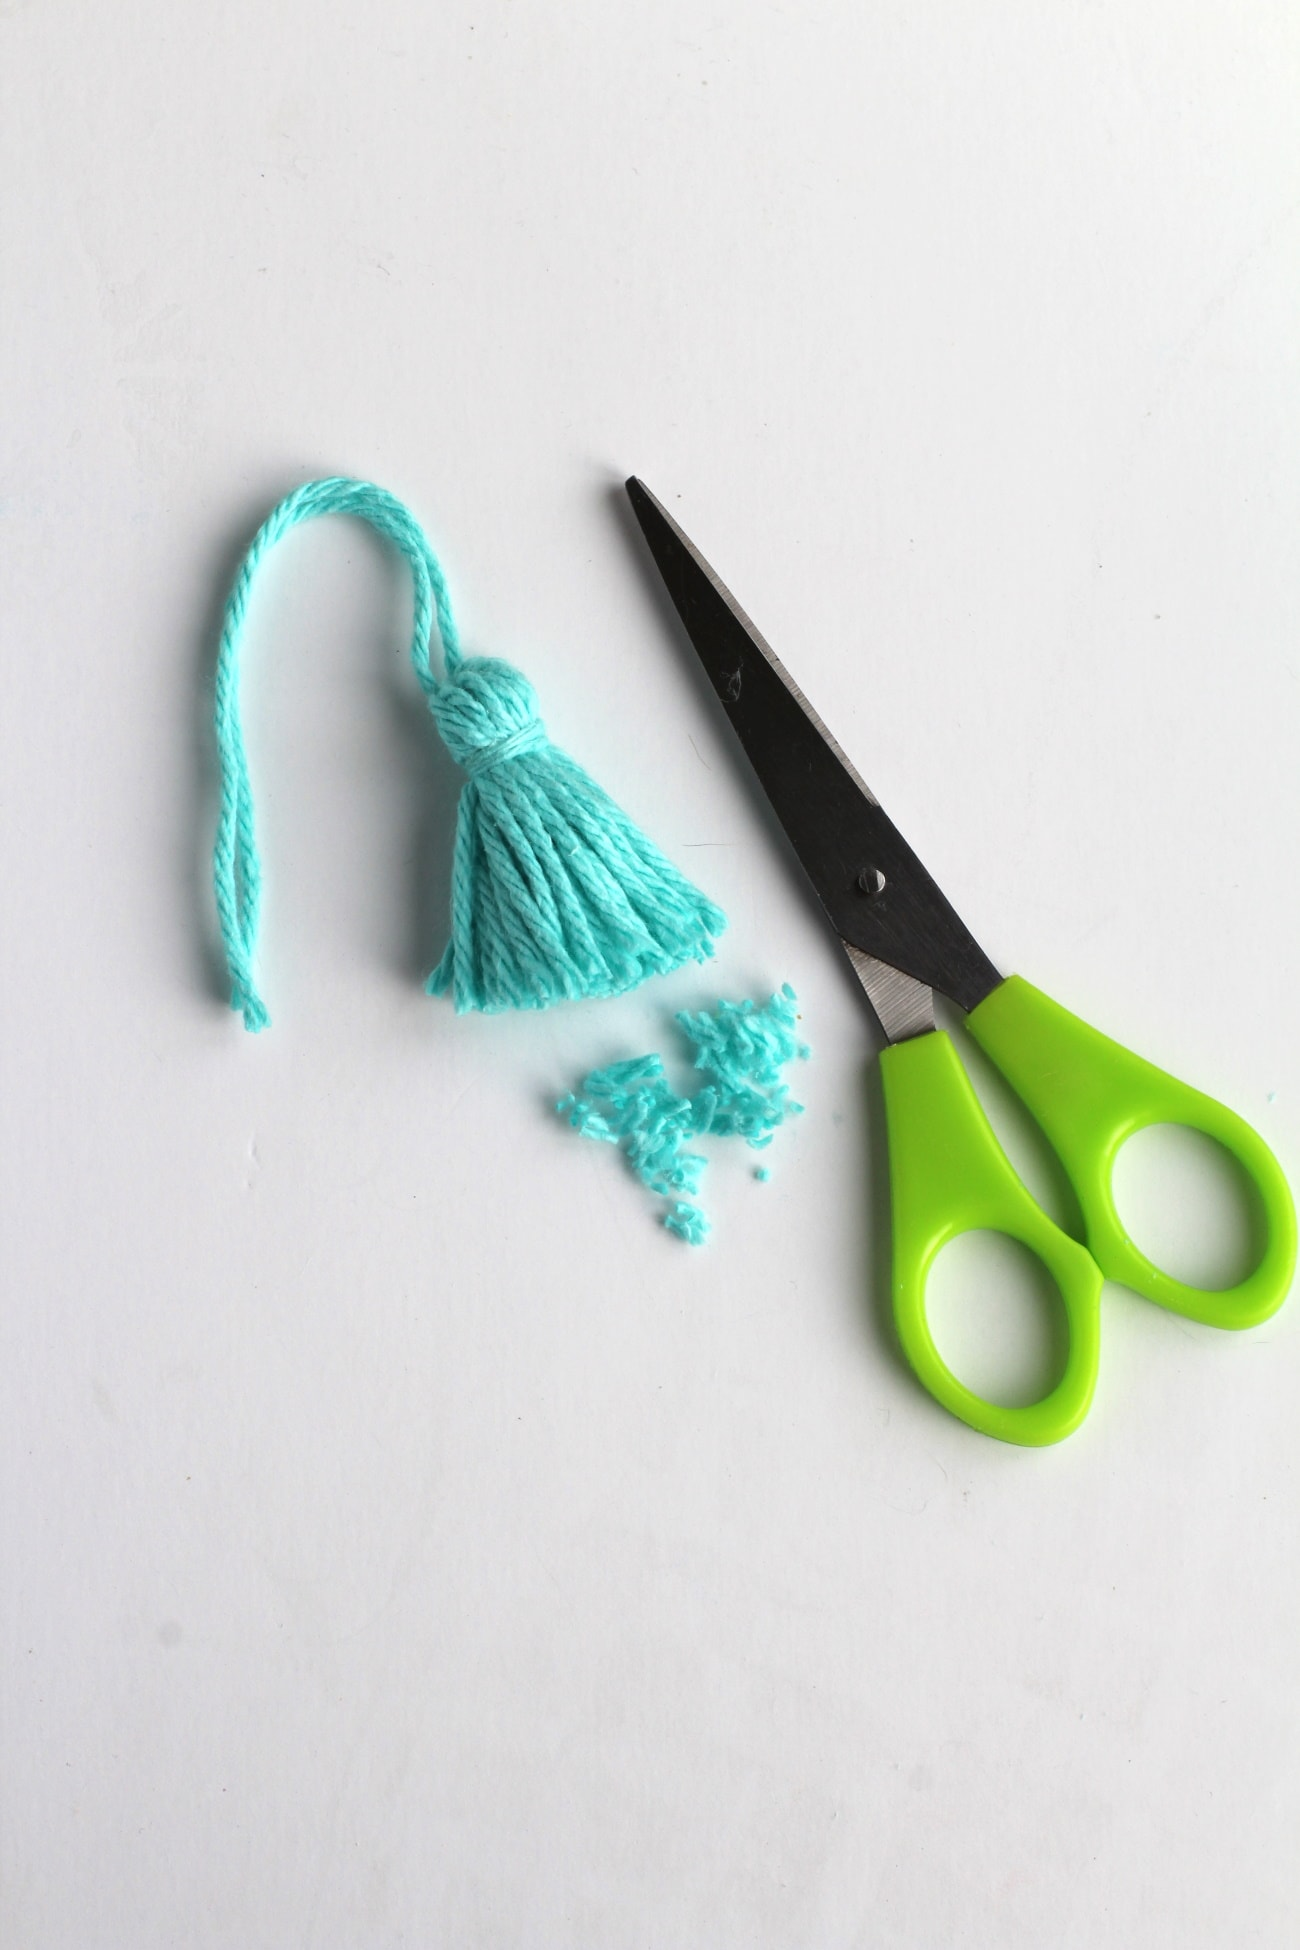 How to make yarn tassels for your macrame hanger